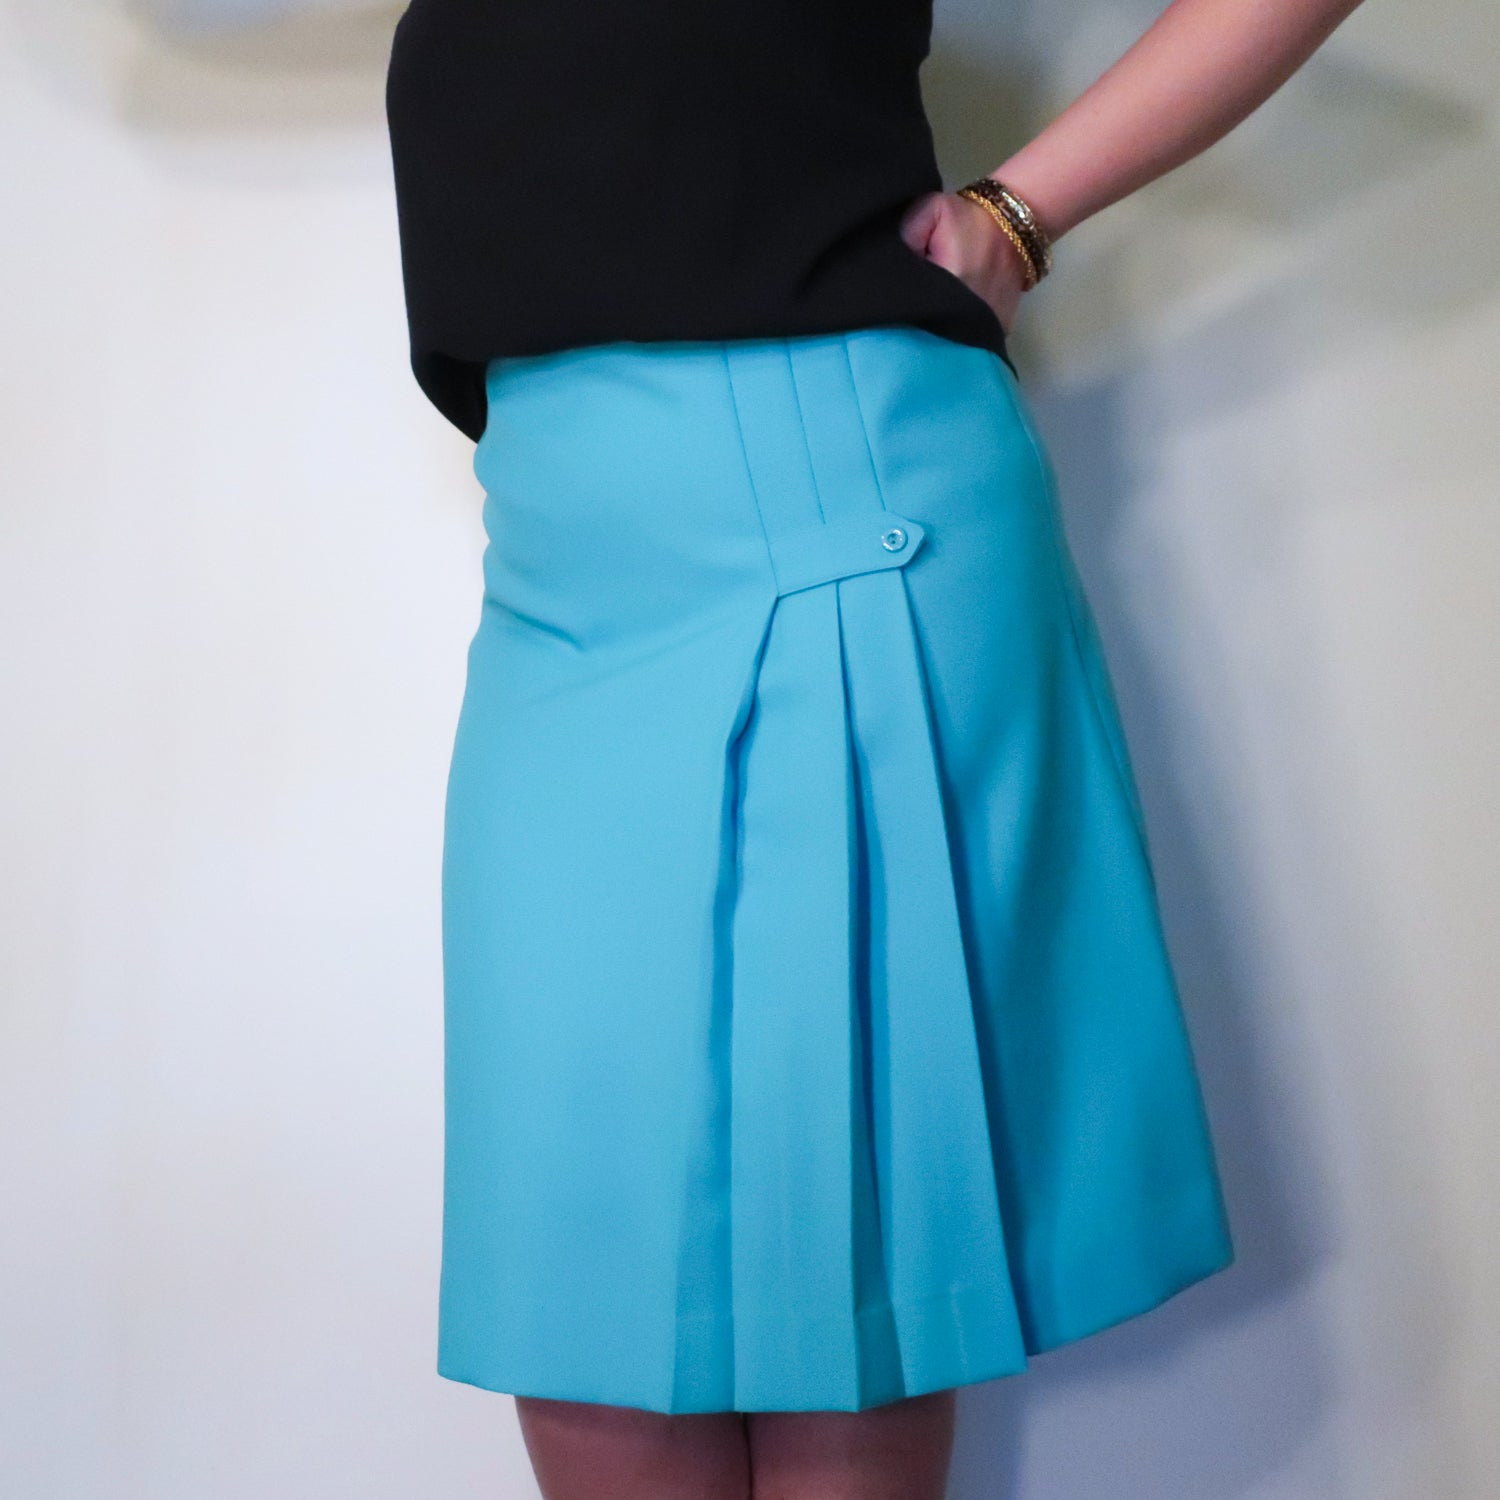 Second Room Vintage Clothing. Vintage bright blue a-line skirt, with pleated detail in the front. Free North American shipping on all orders.